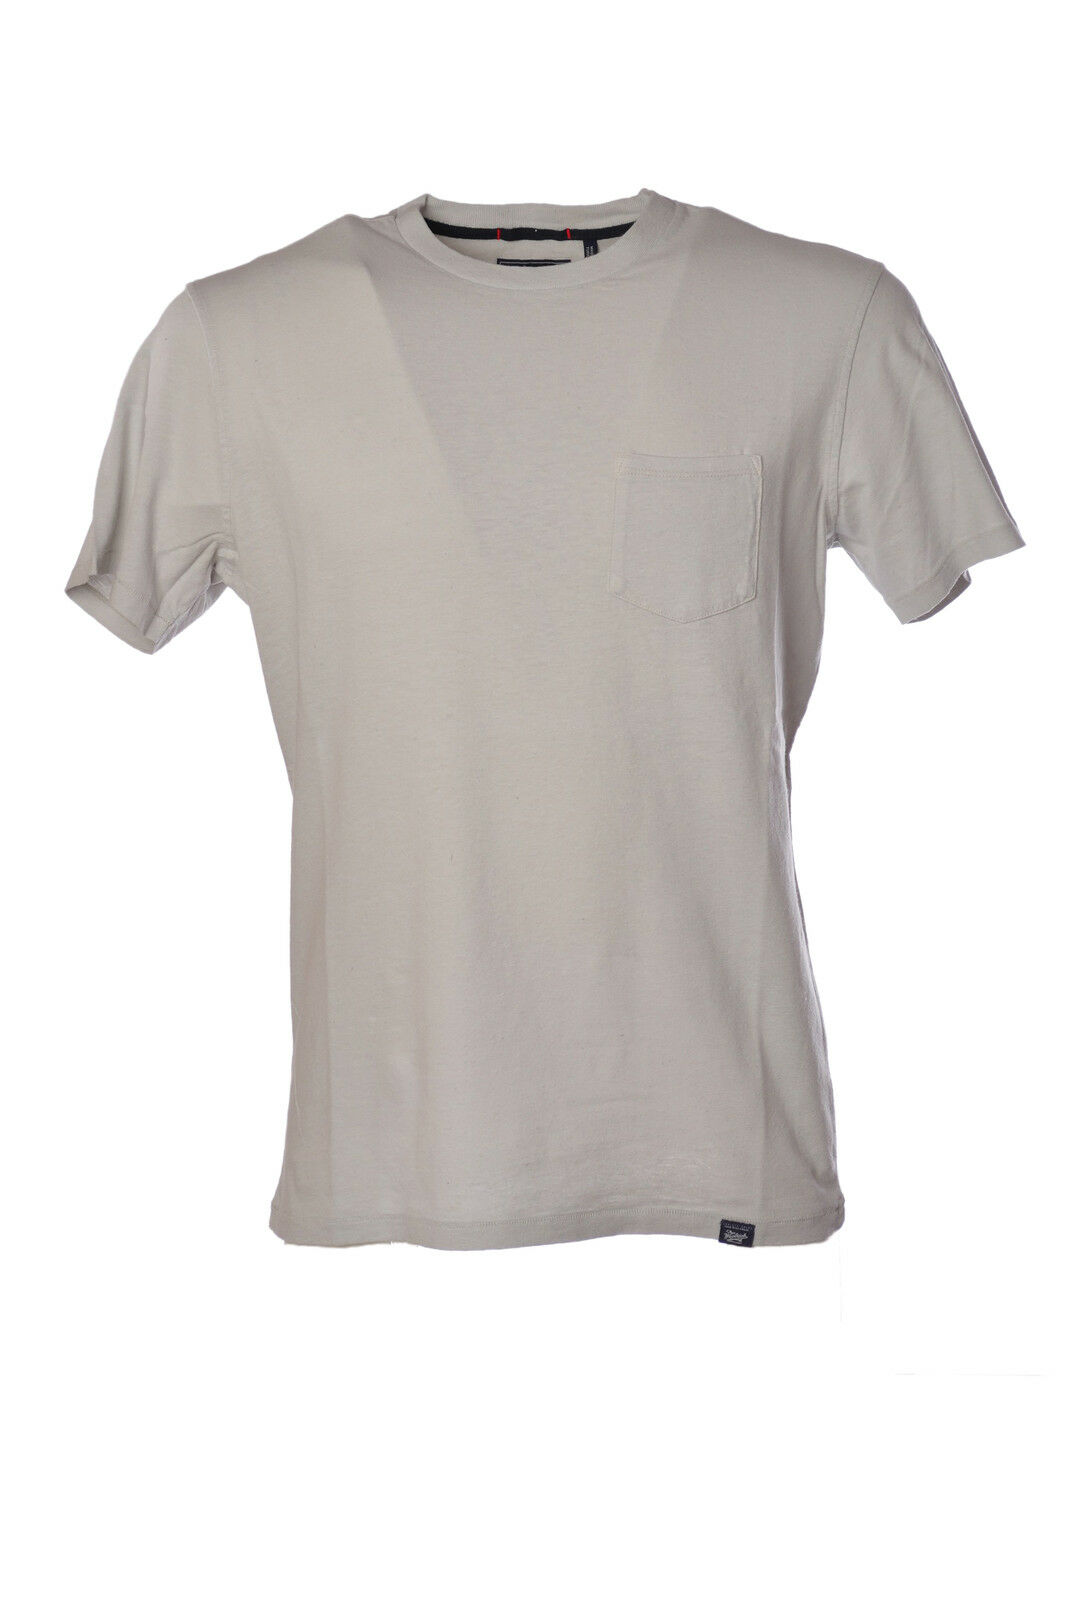 Woolrich  -  T - Male - White - 1801910A184537